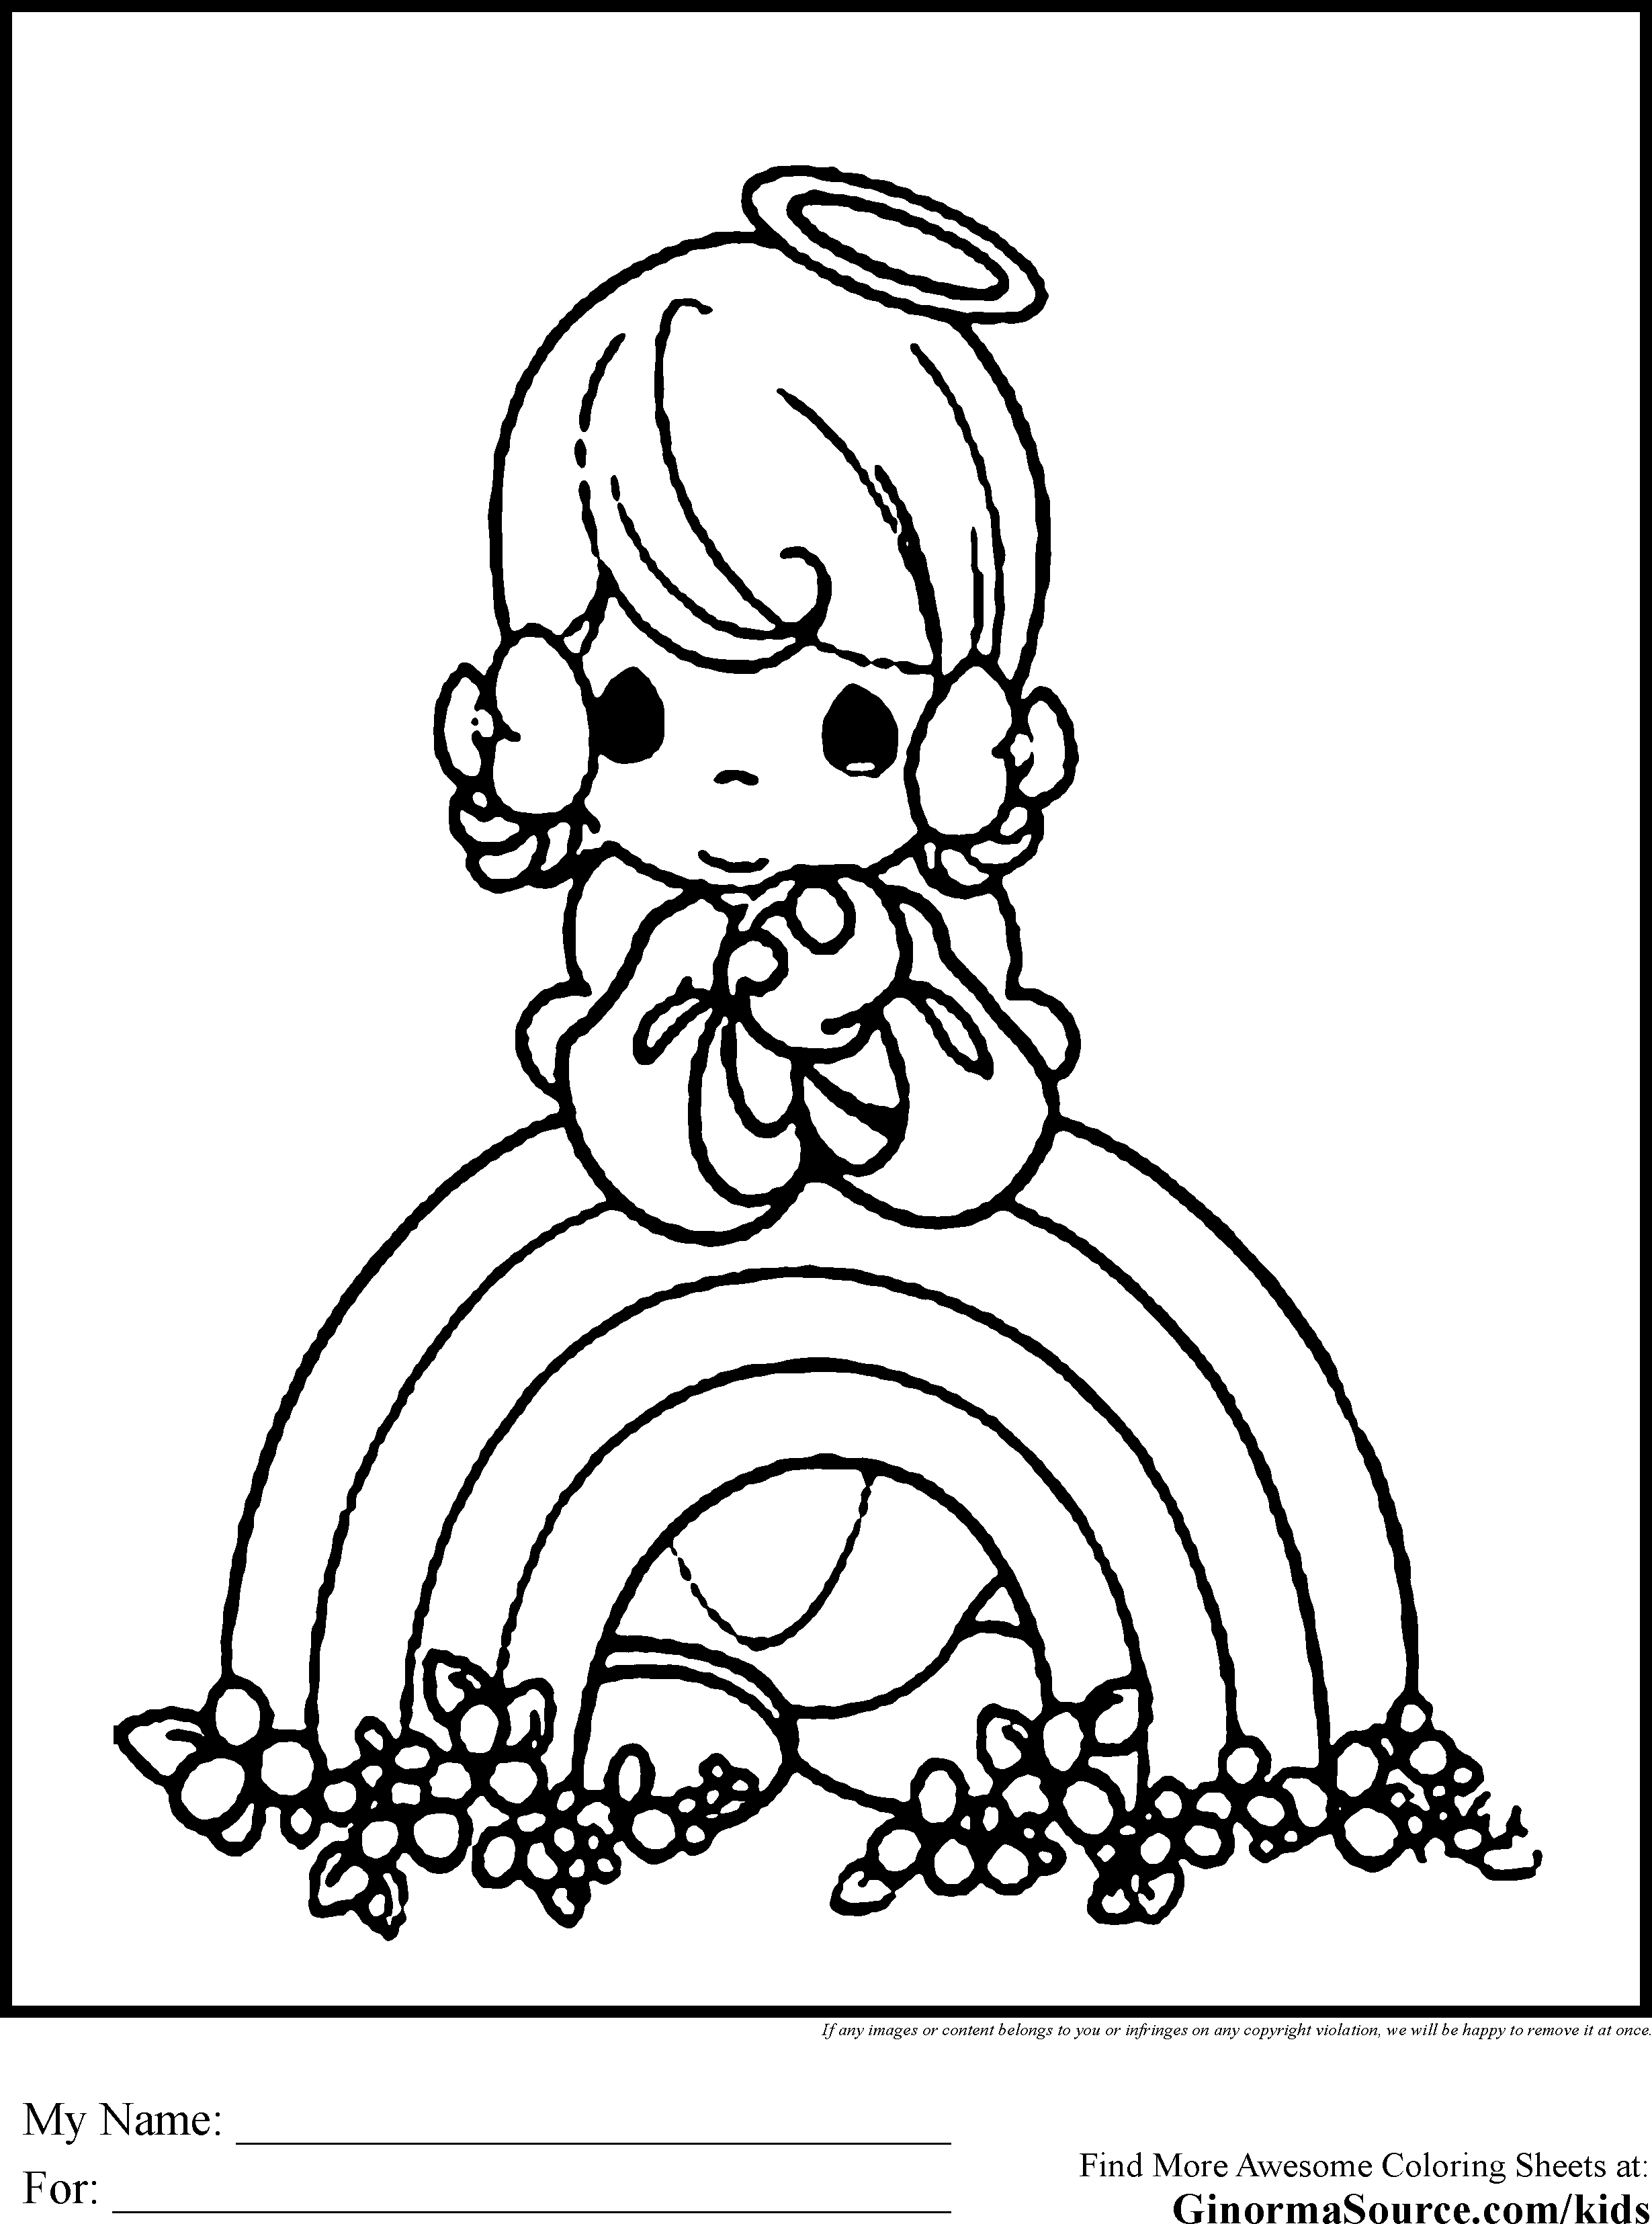 Coloring Sheets You Can Print Download Of Cute Coloring Pages for Girls Printable Kids Colouring Pages Kids Gallery